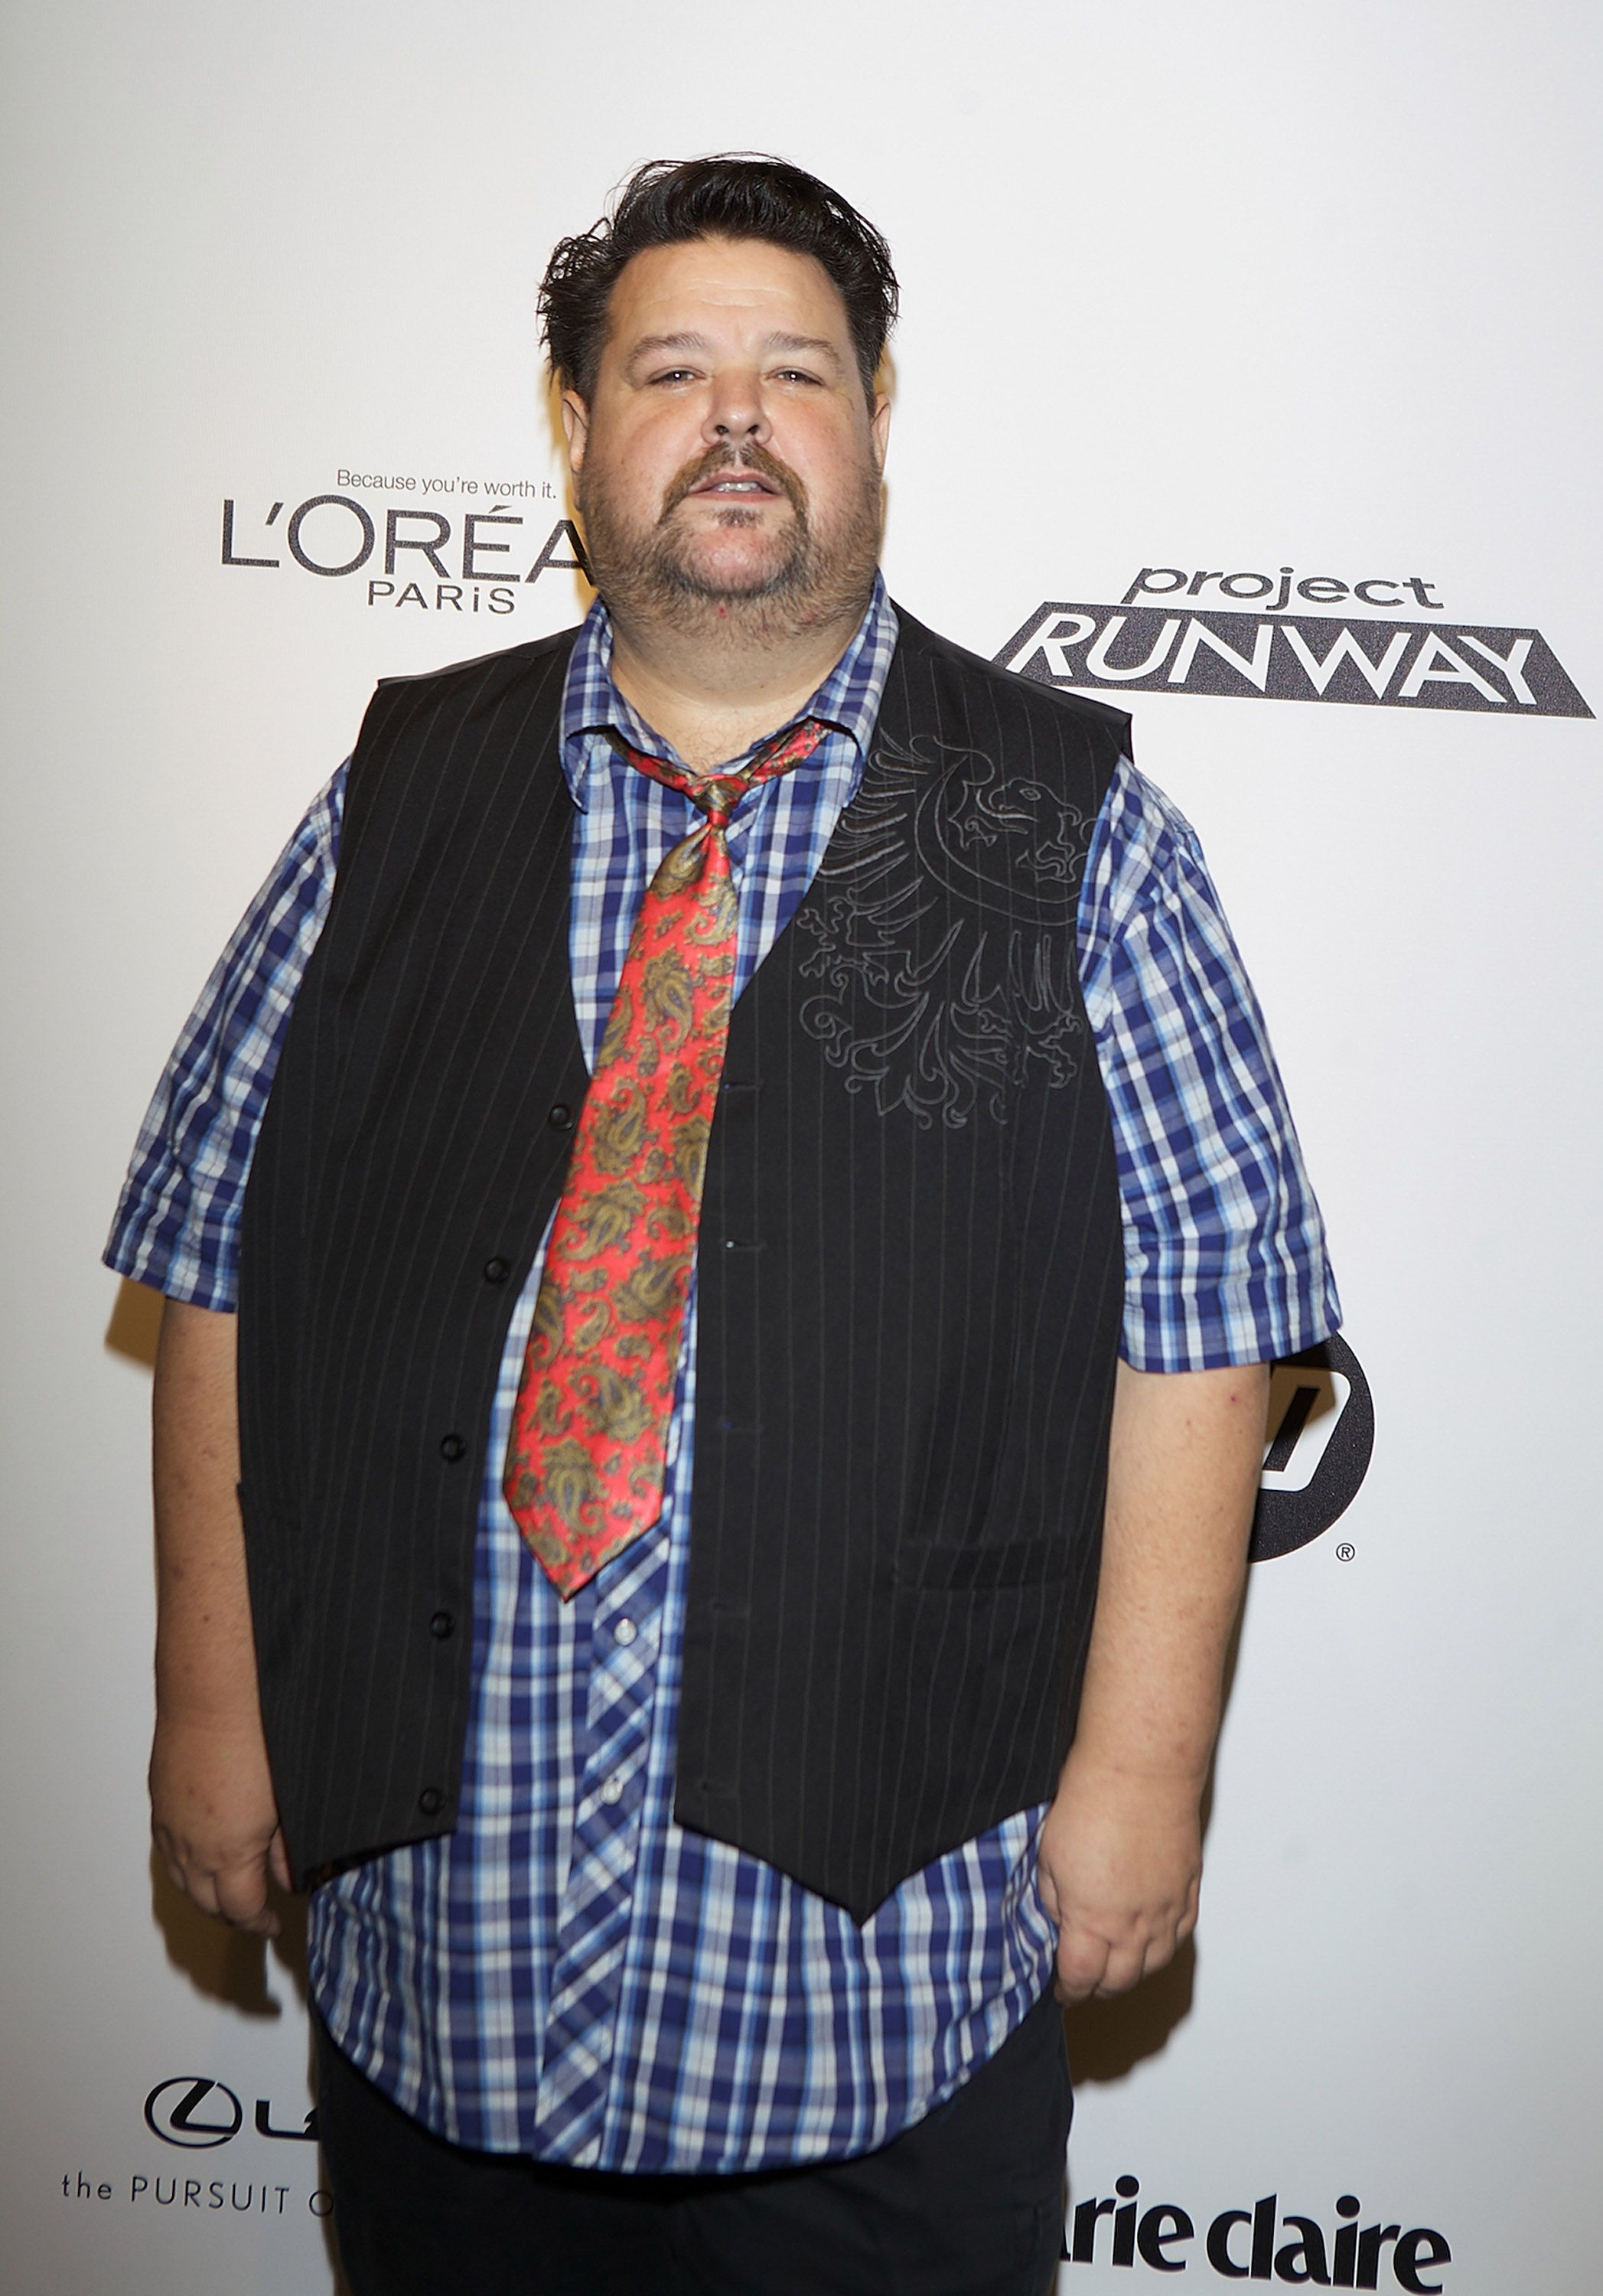 Project Runway star Chris March has died, aged 56